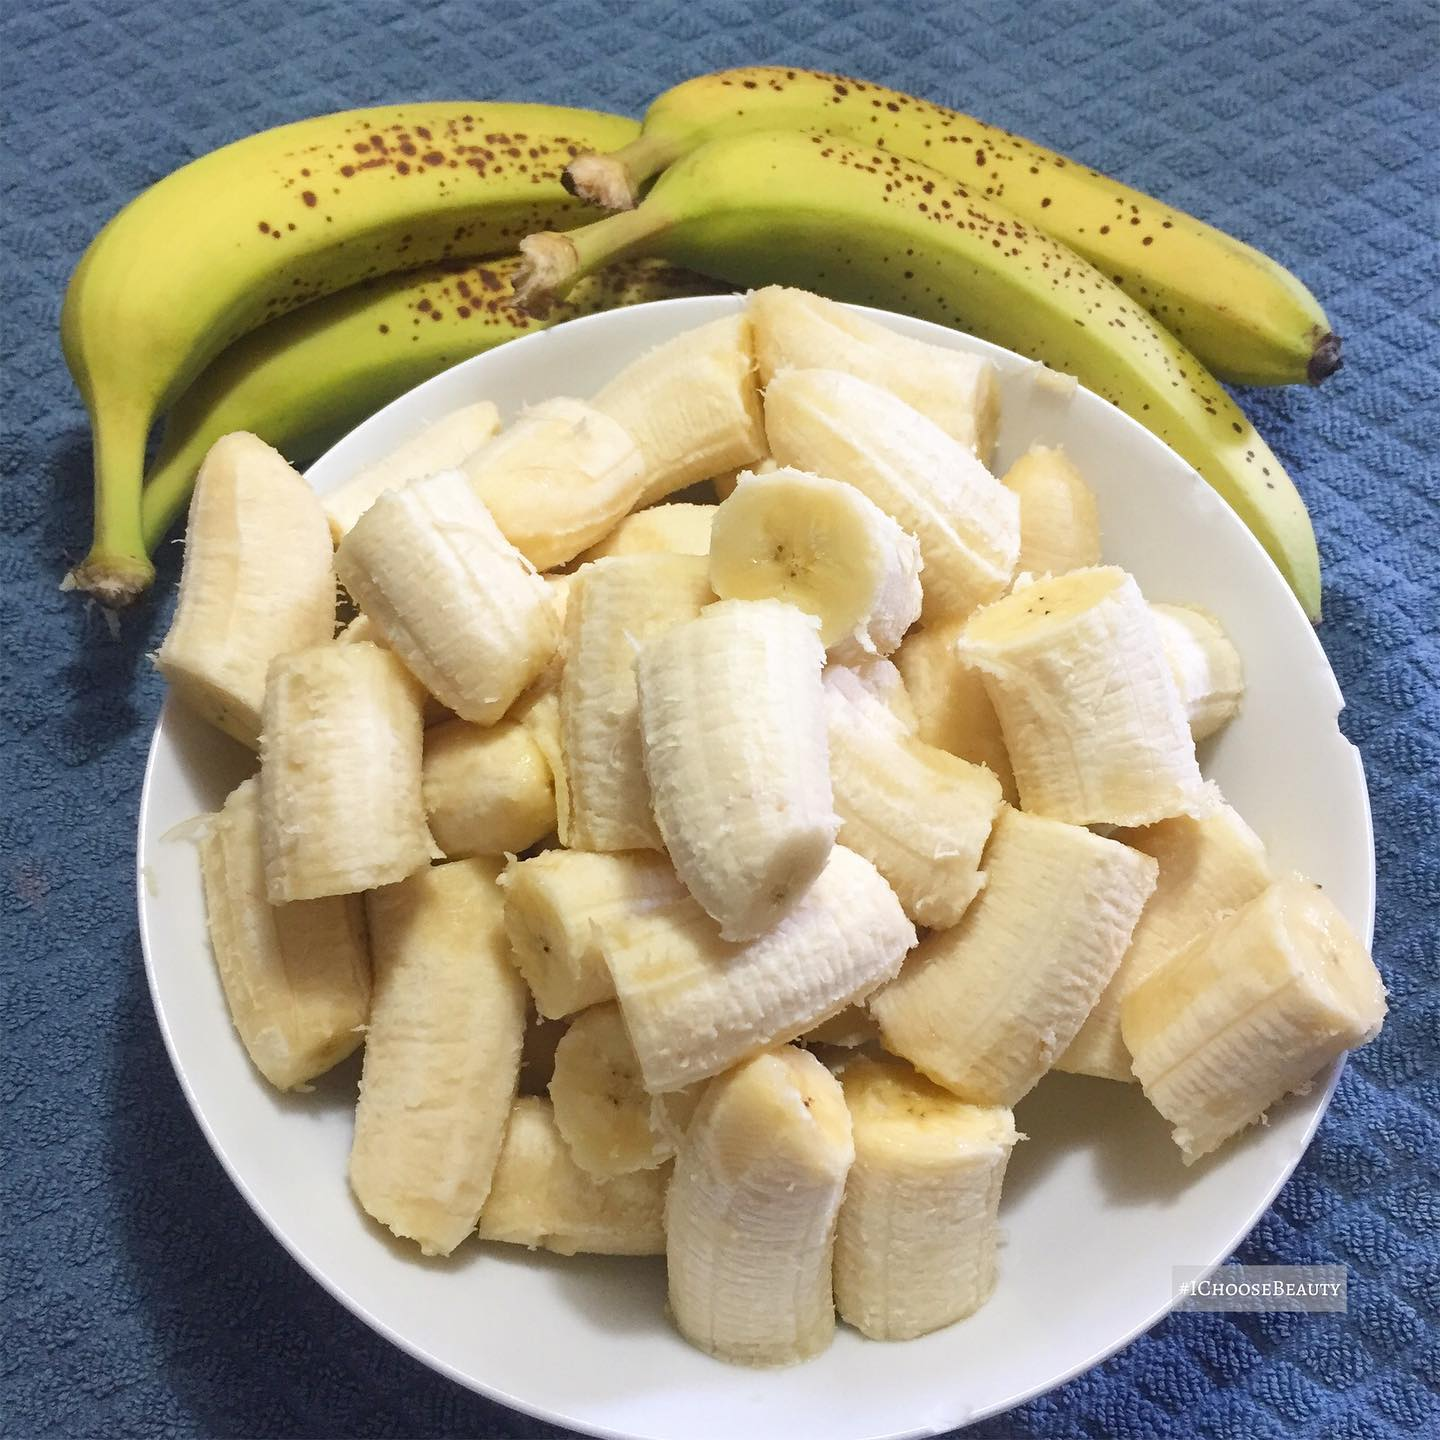 My weekly banana chopping!  Next stop for this batch the freezer so they're ready for our daily smoothies.  #ichoosebeauty Day 2801